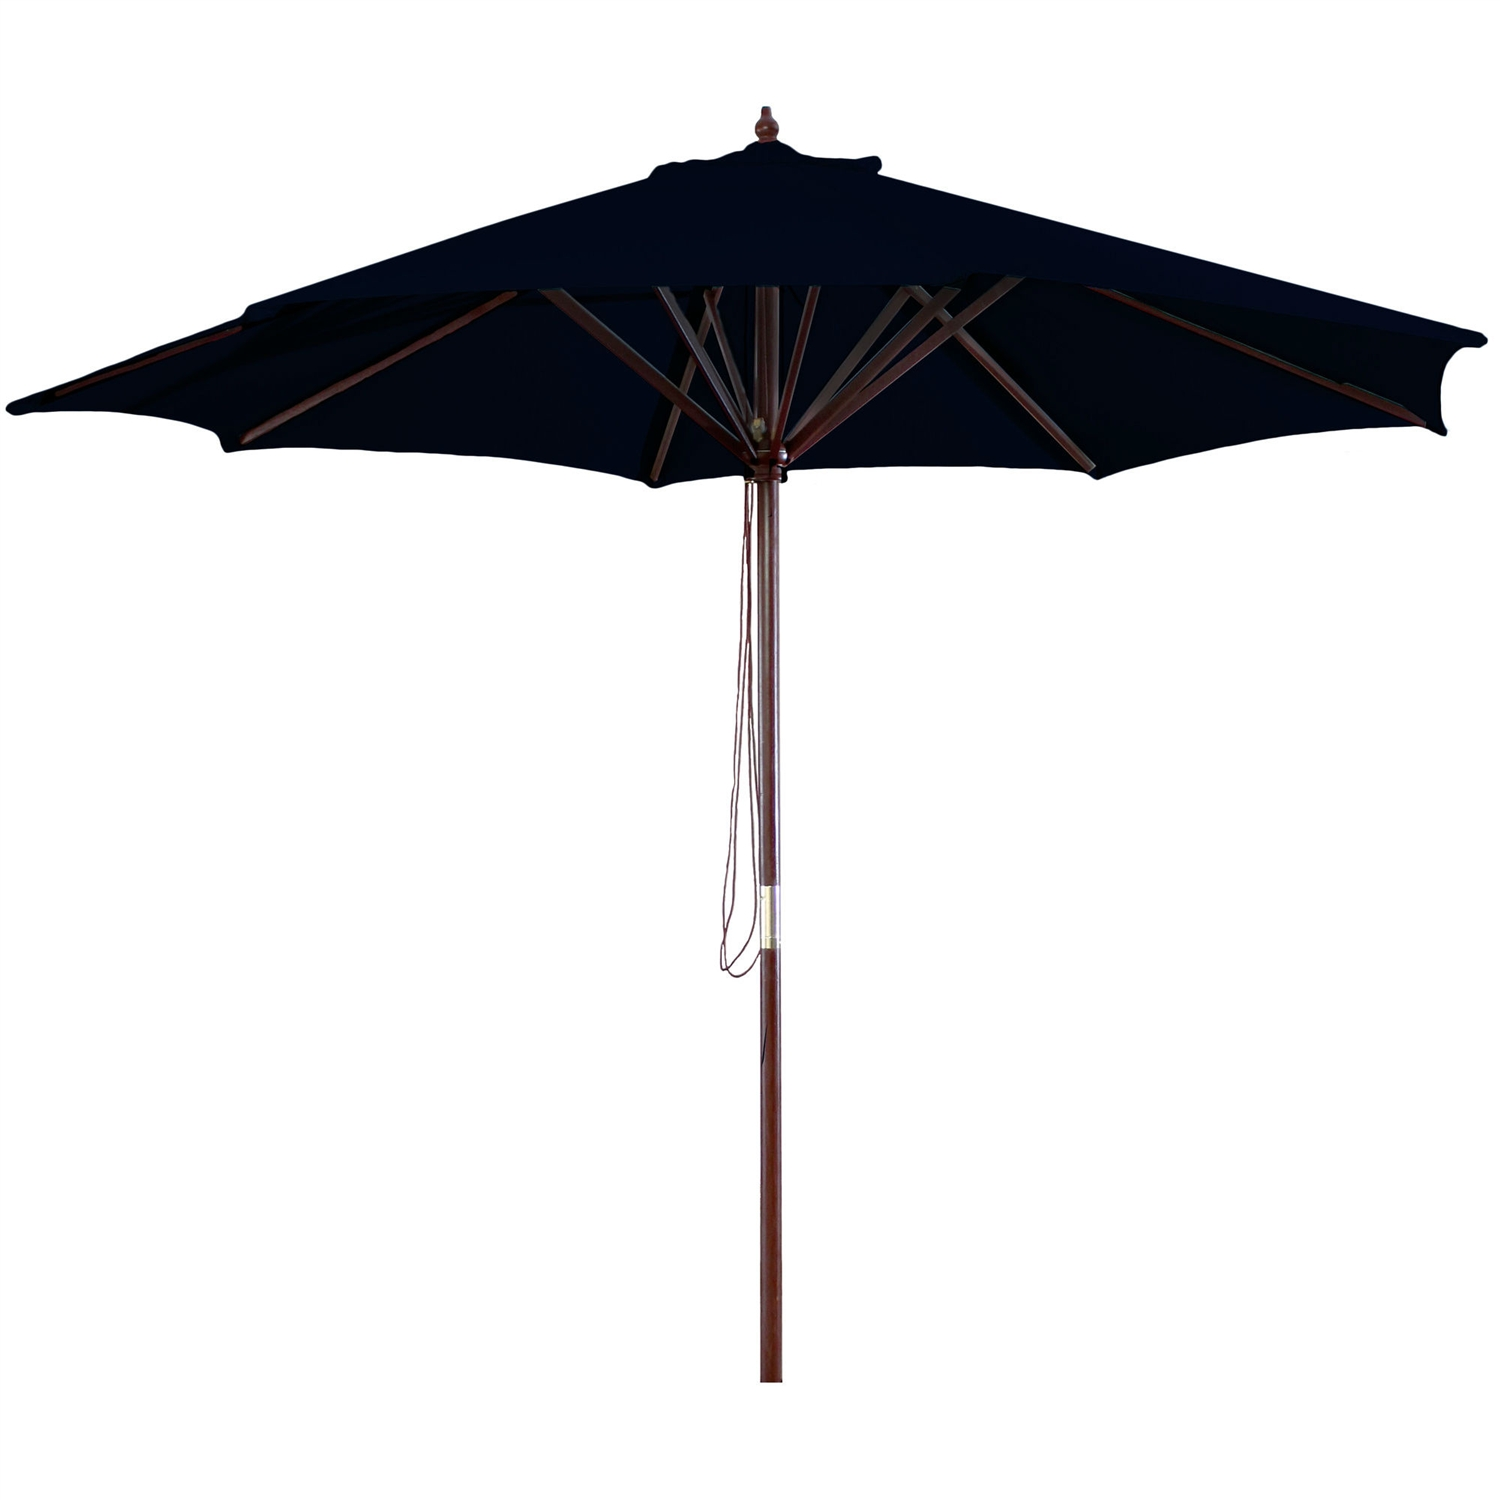 9-FT Market / Patio Umbrella with Black Canopy, J9WU43099:  This 9-FT Market / Patio Umbrella with Black Canopy would be a great addition to your home. We recommend to take inside during extreme weather to avoid damage. To clean use a mild soap and water solution. Not intended for Commercial Use, only warrantied for 500 hours of direct sunlight for commercial use. Maintenance free.